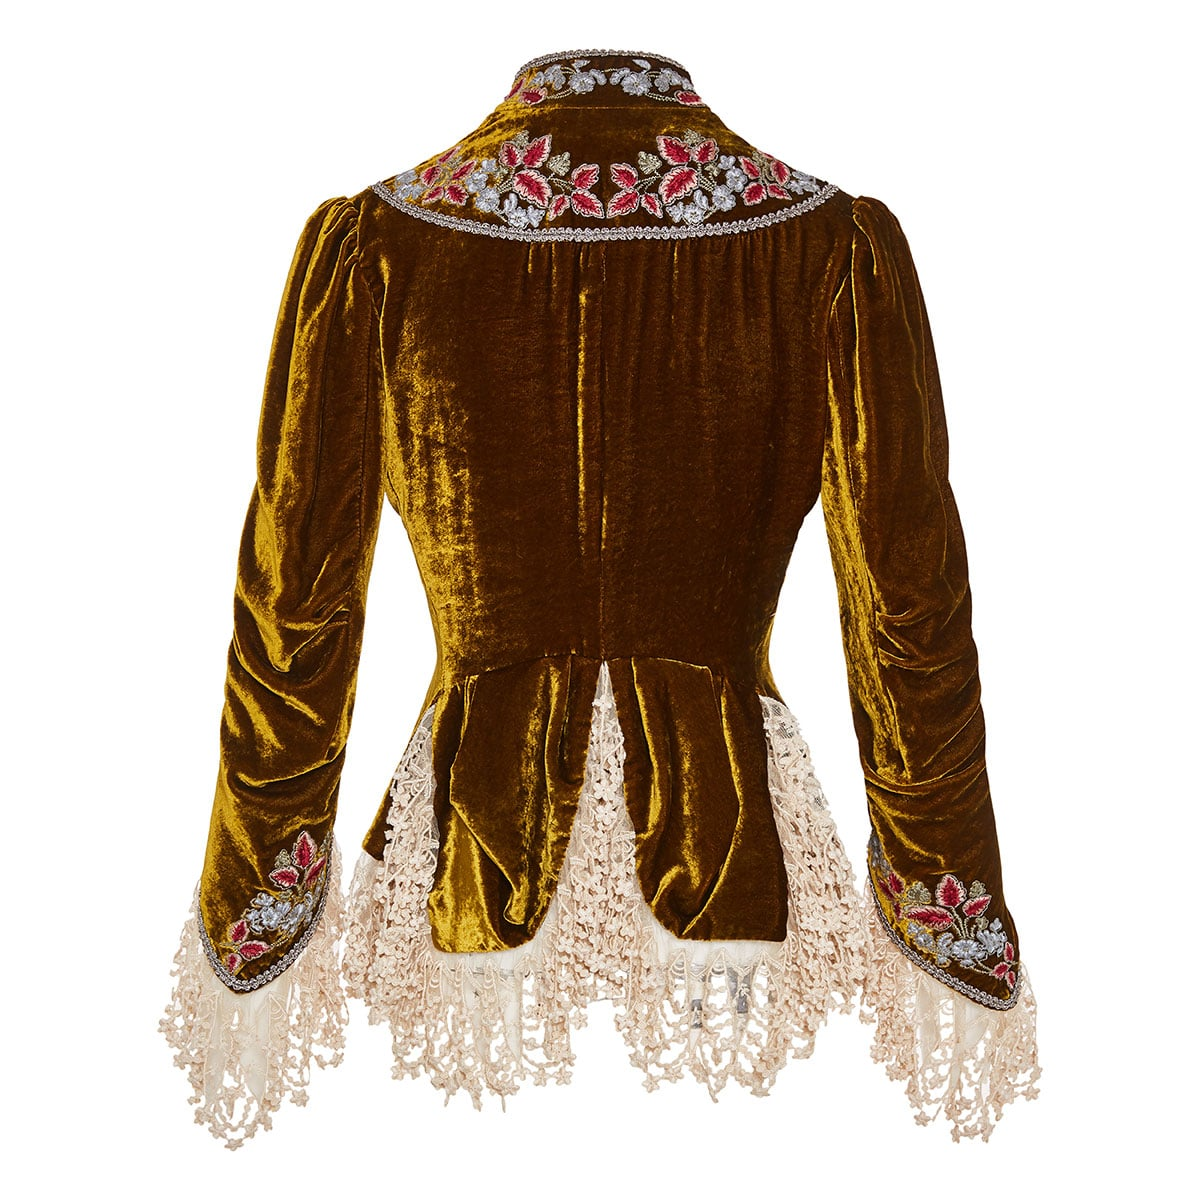 Lace-trimmed embroidered velvet jacket